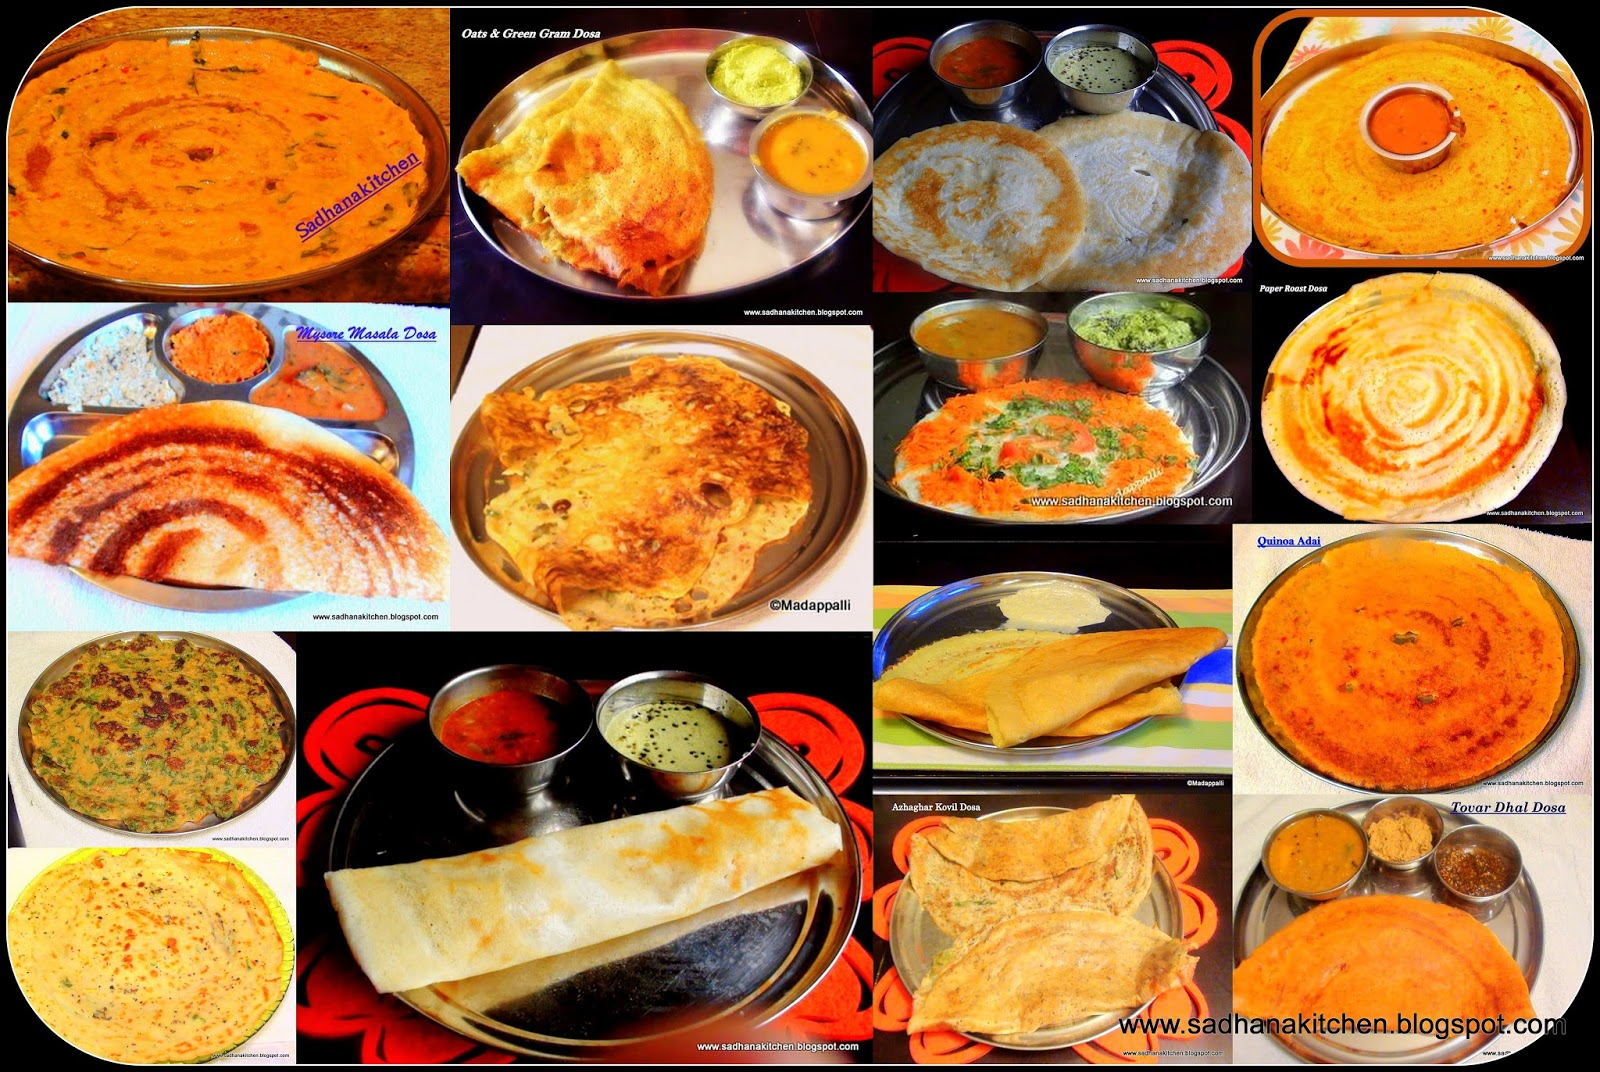 Madappalli temples kitchen 444 variety of dosas indian crepe 444 variety of dosas indian crepe varieties forumfinder Image collections